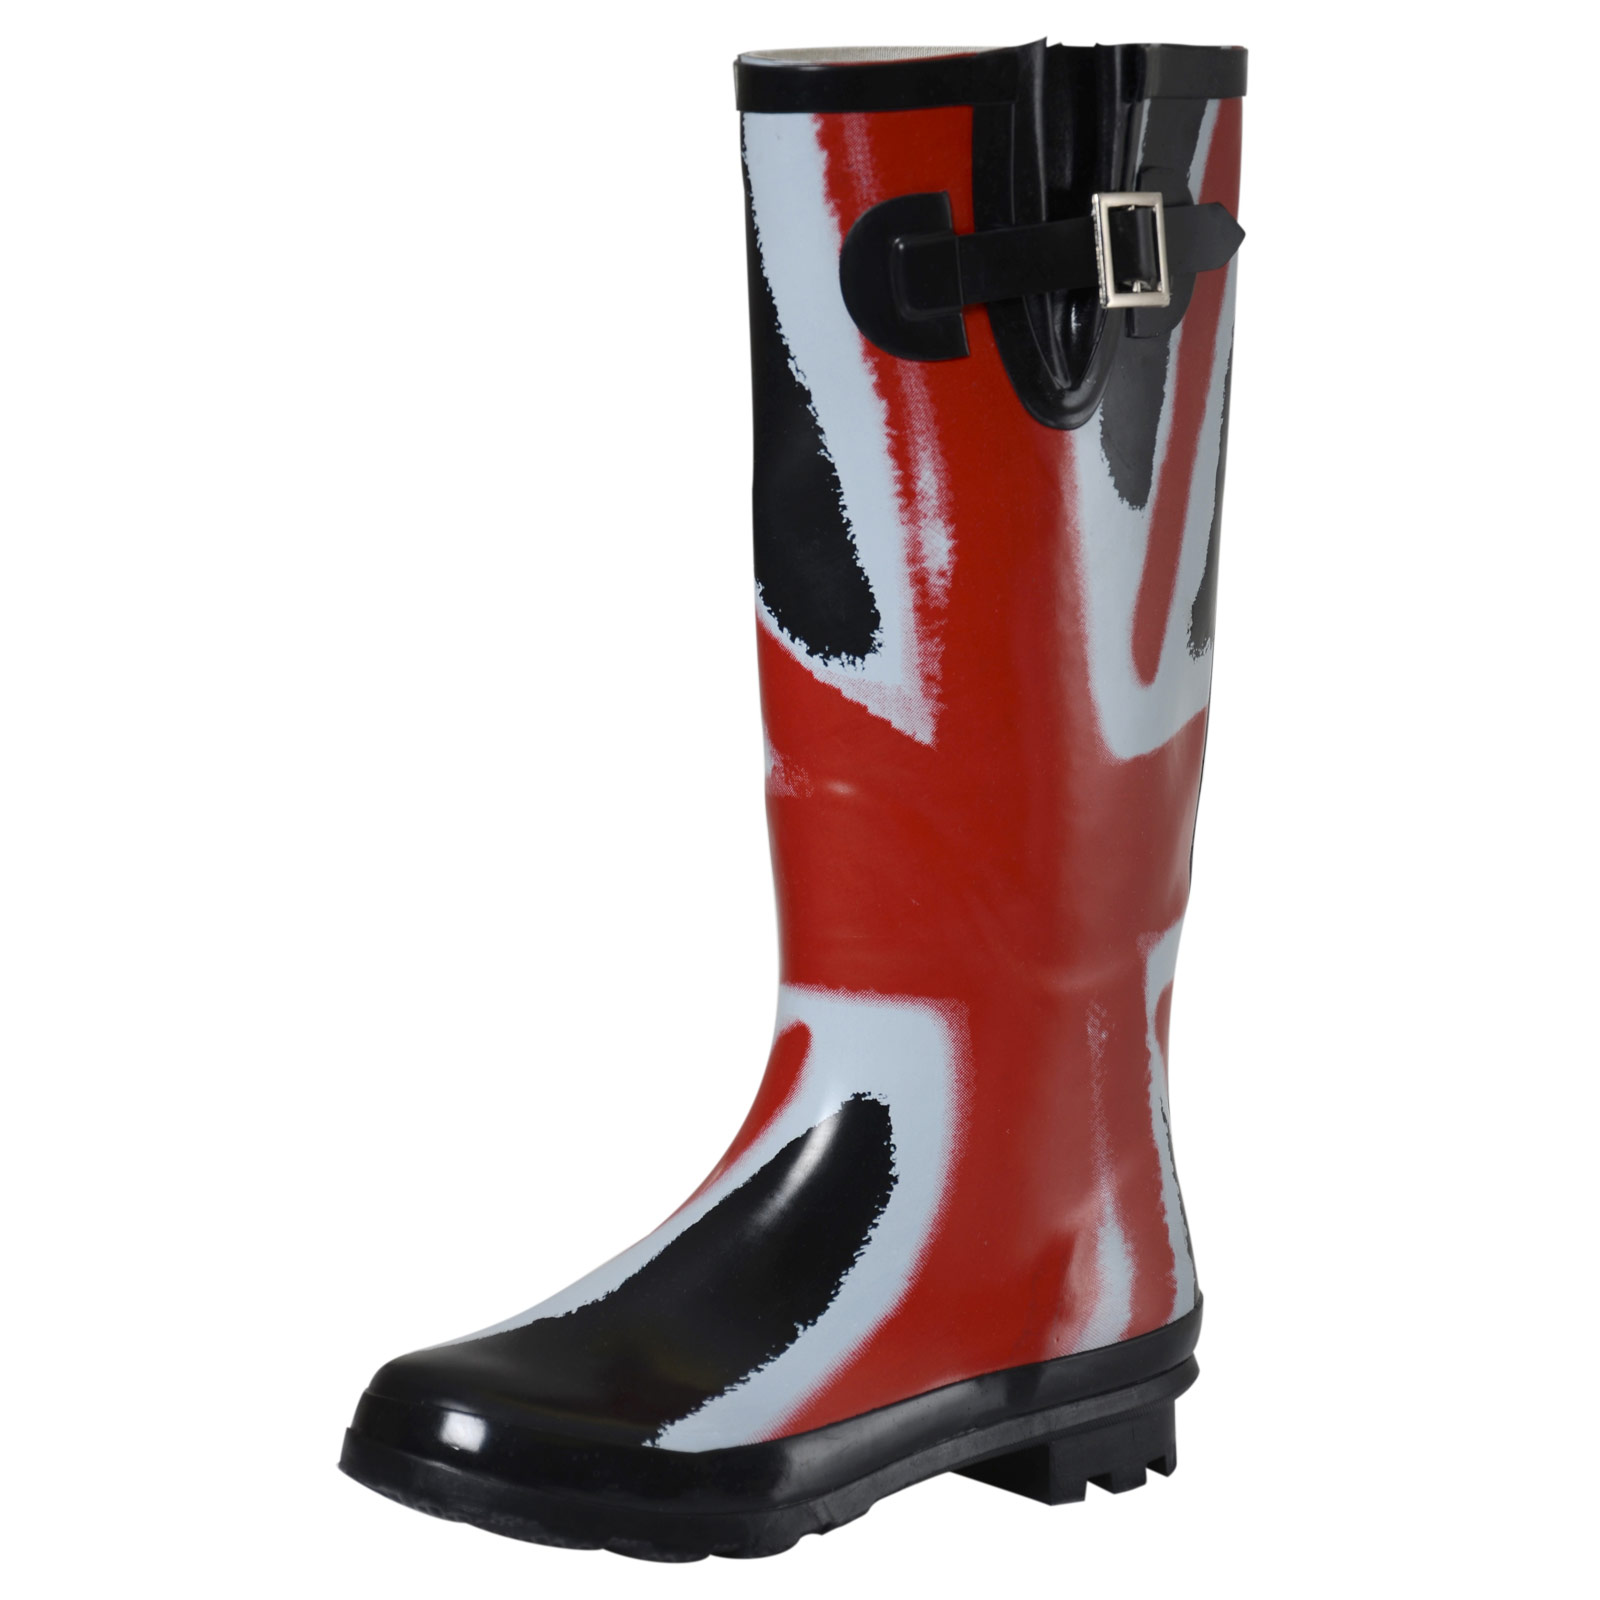 fashion wellies wellington boots great colours